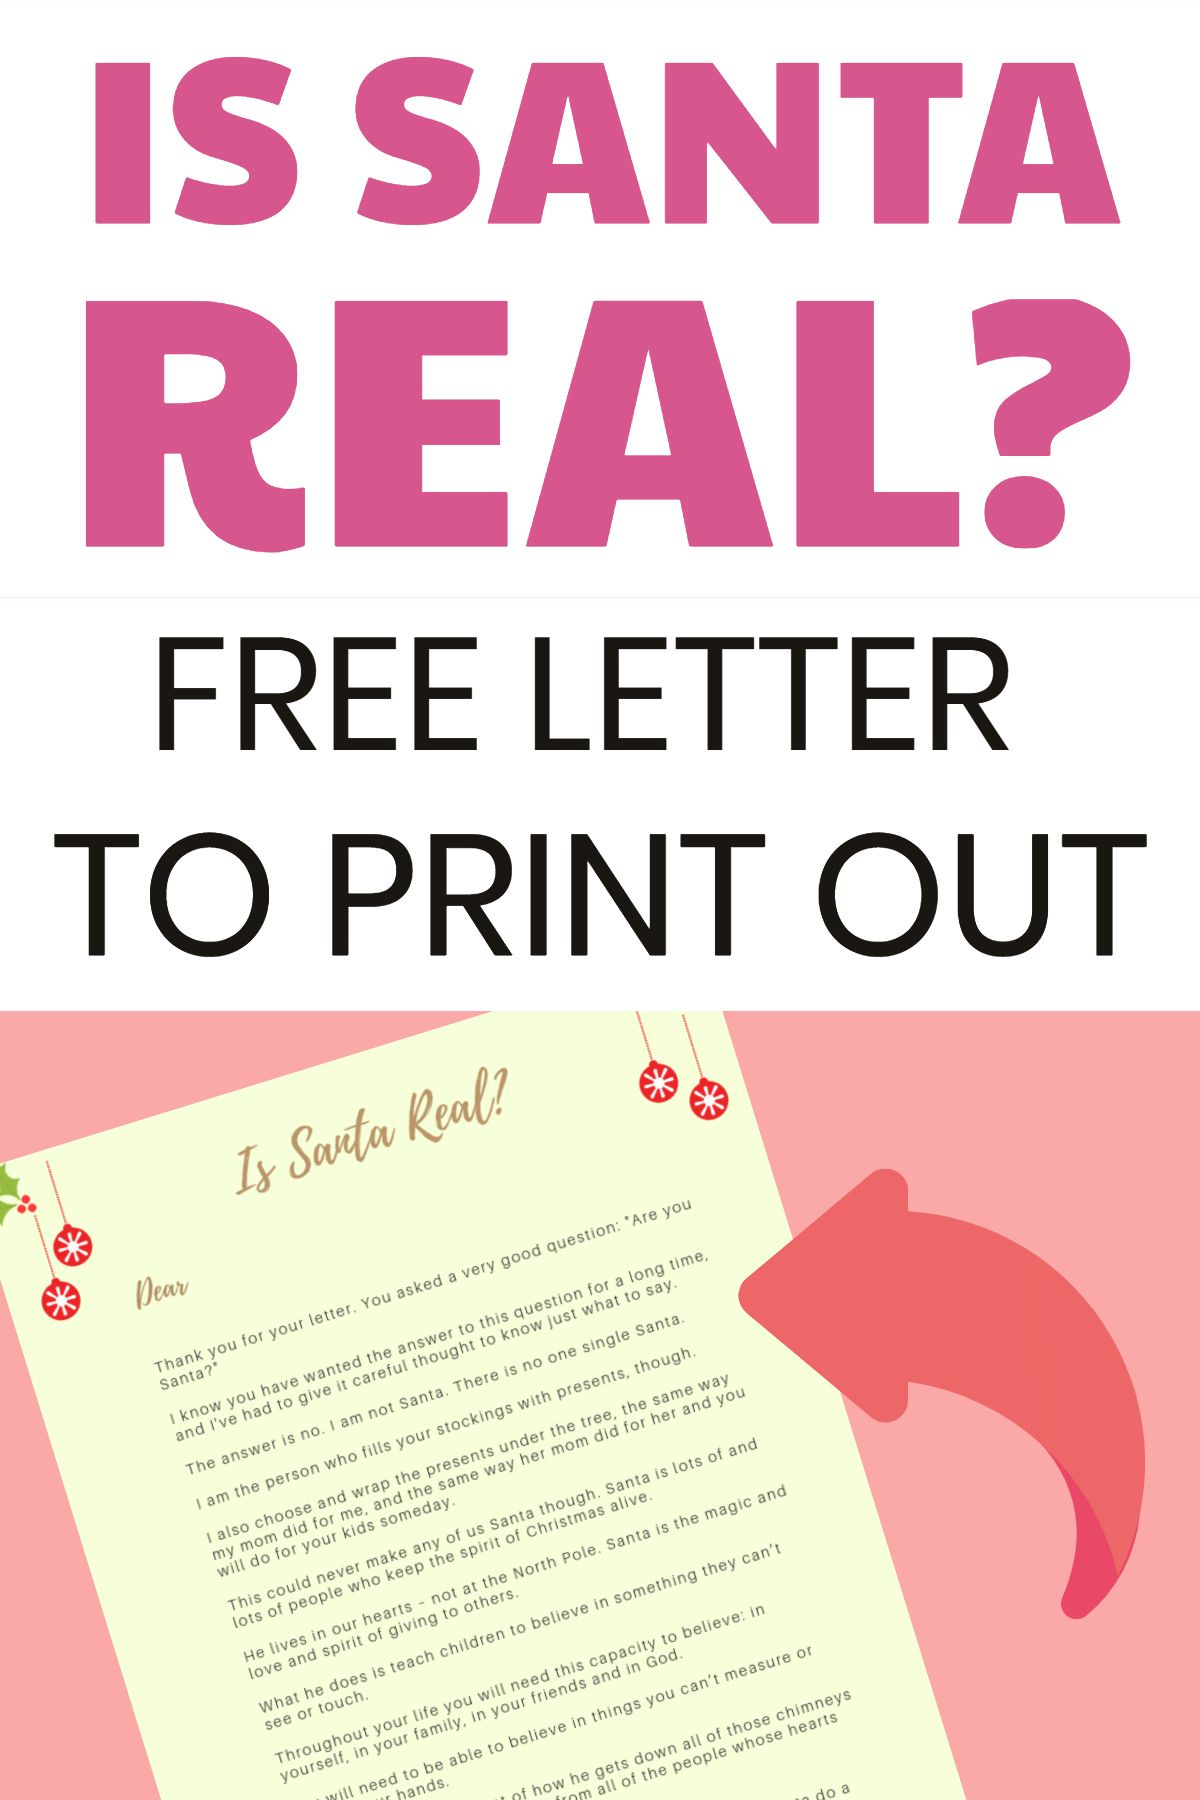 graphic relating to Printable Letter Explaining Santa titled Is Santa True? - A Interesting Letter Describing Santa Claus